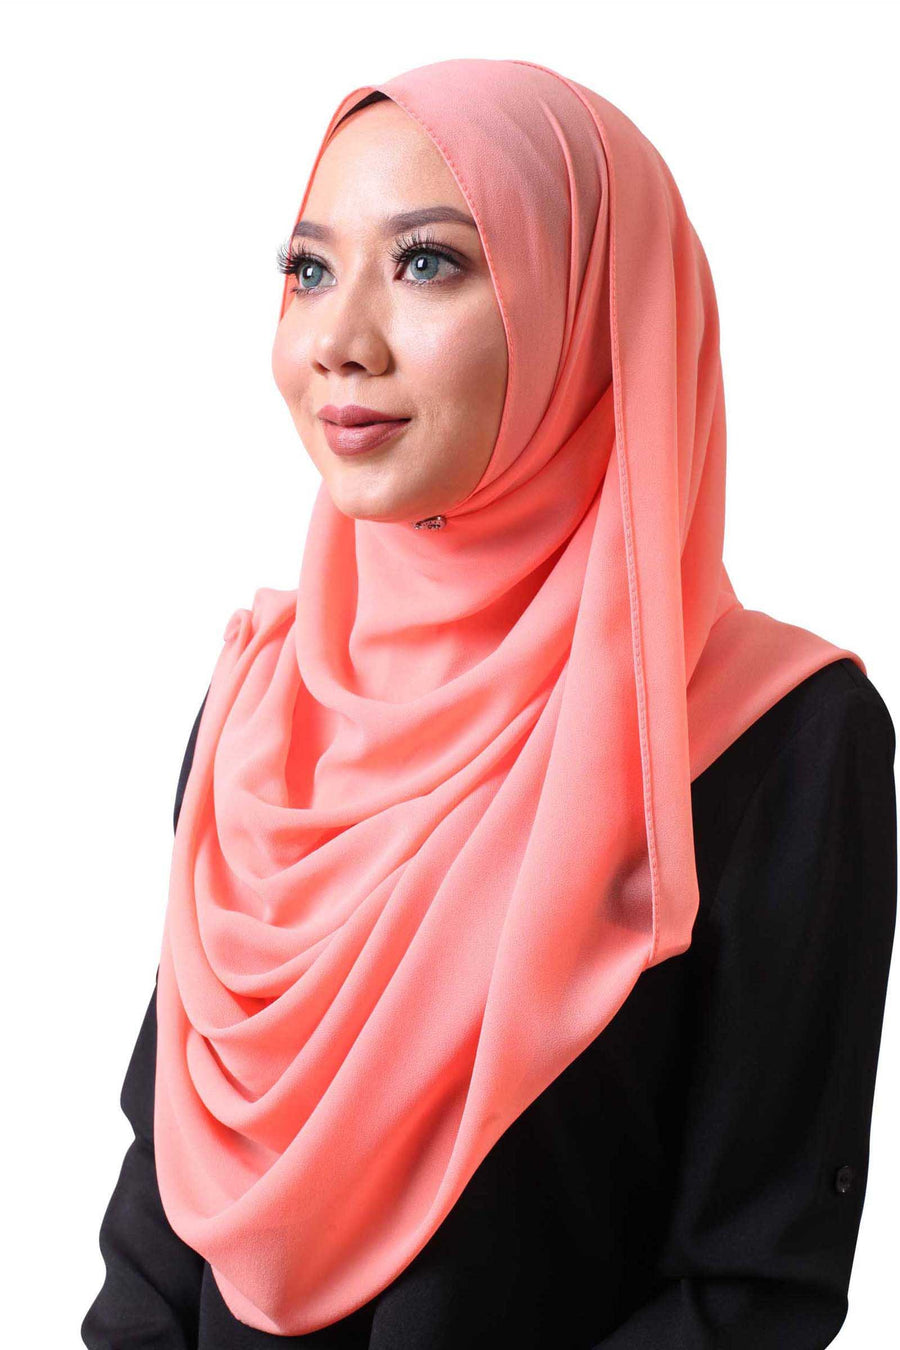 Tudung arab online dating